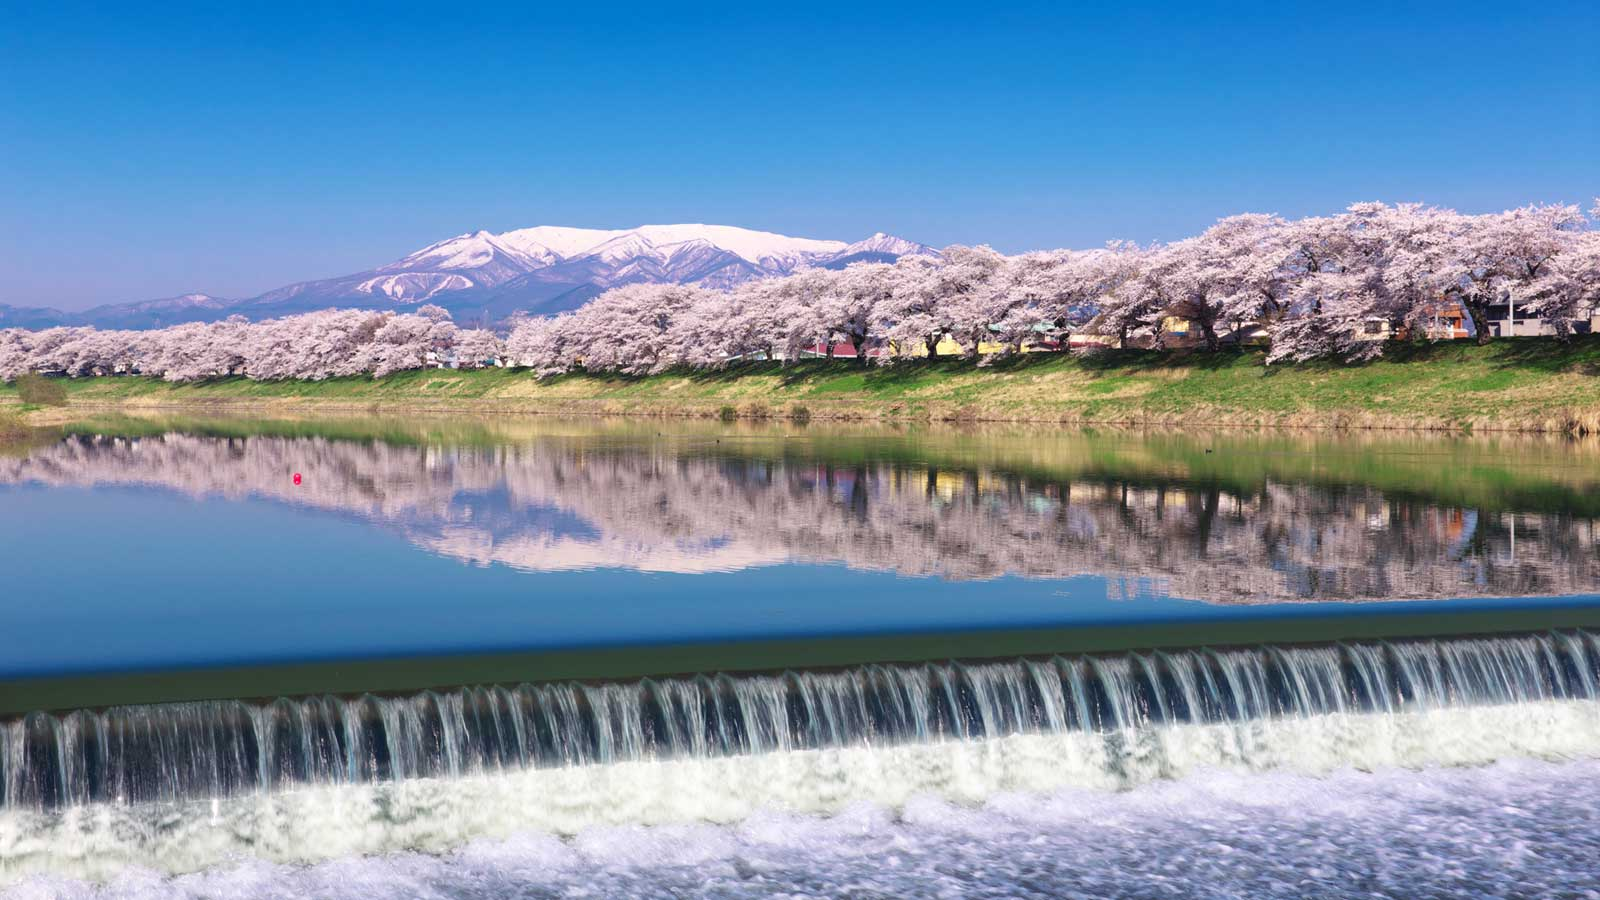 Tohoku Sakura Dream Road 21 Of The Best Cherry Blossom Spots In